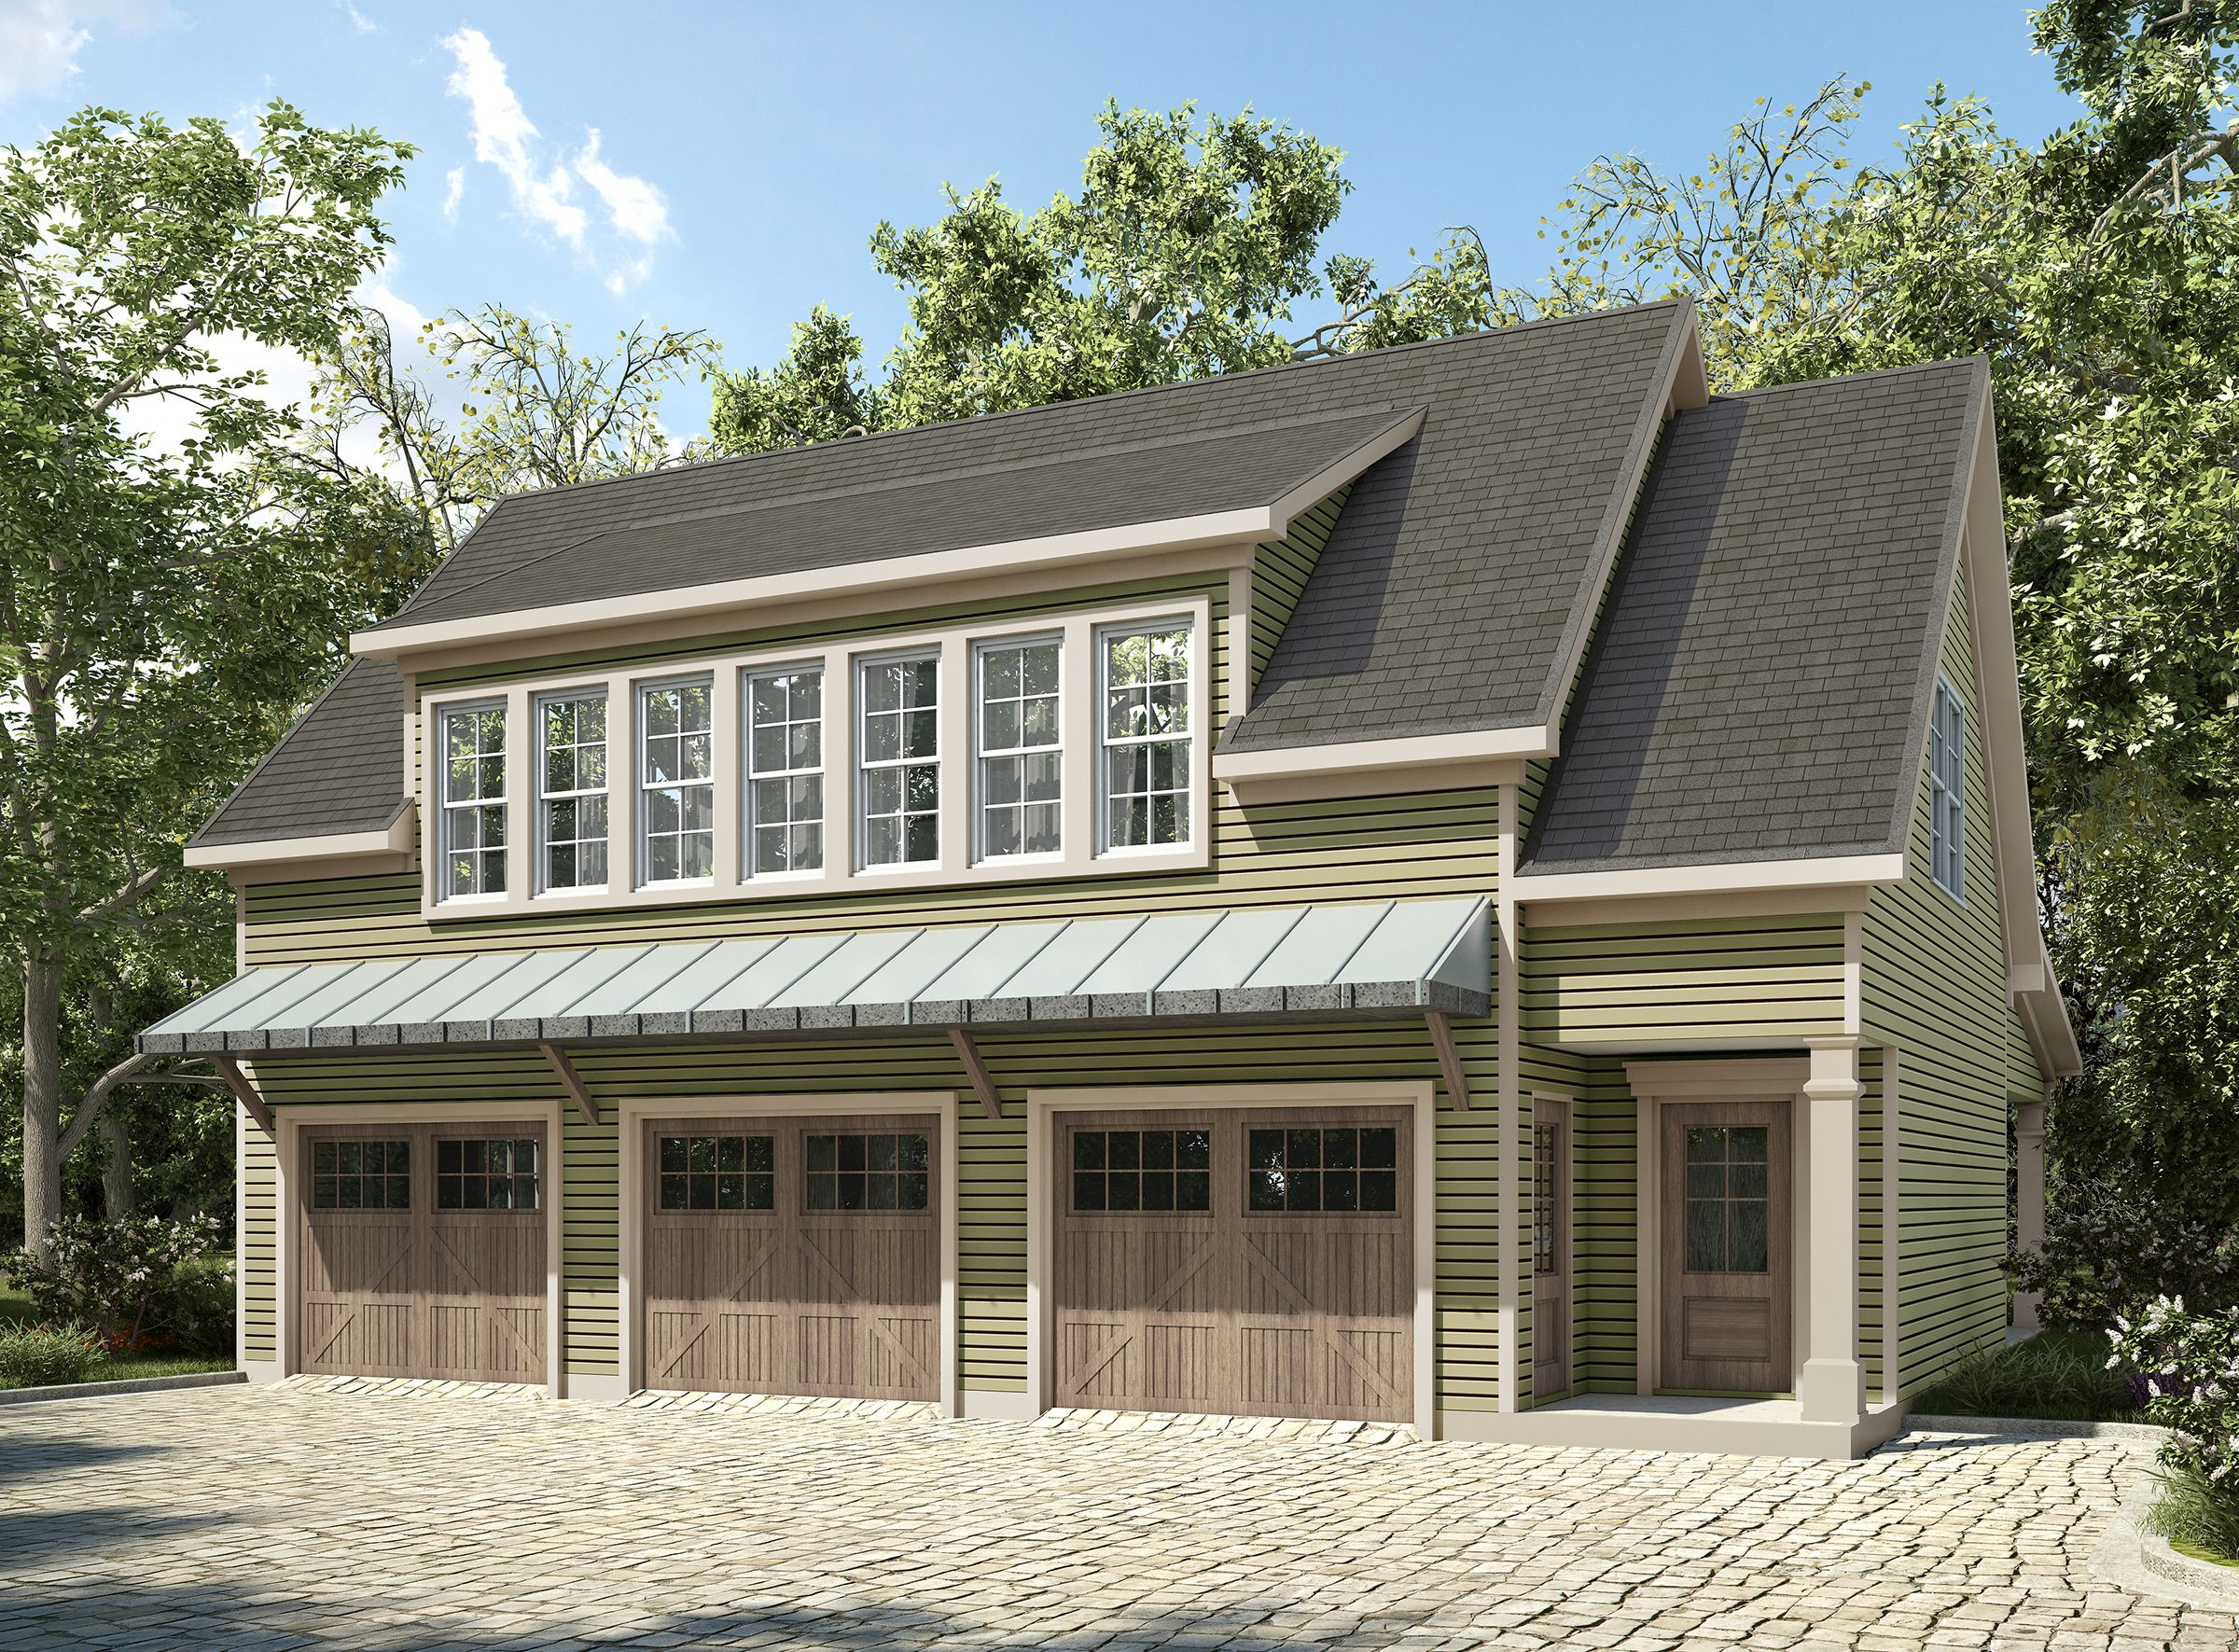 Plan 36057dk 3 bay carriage house plan with shed roof in for Garage apartment building plans